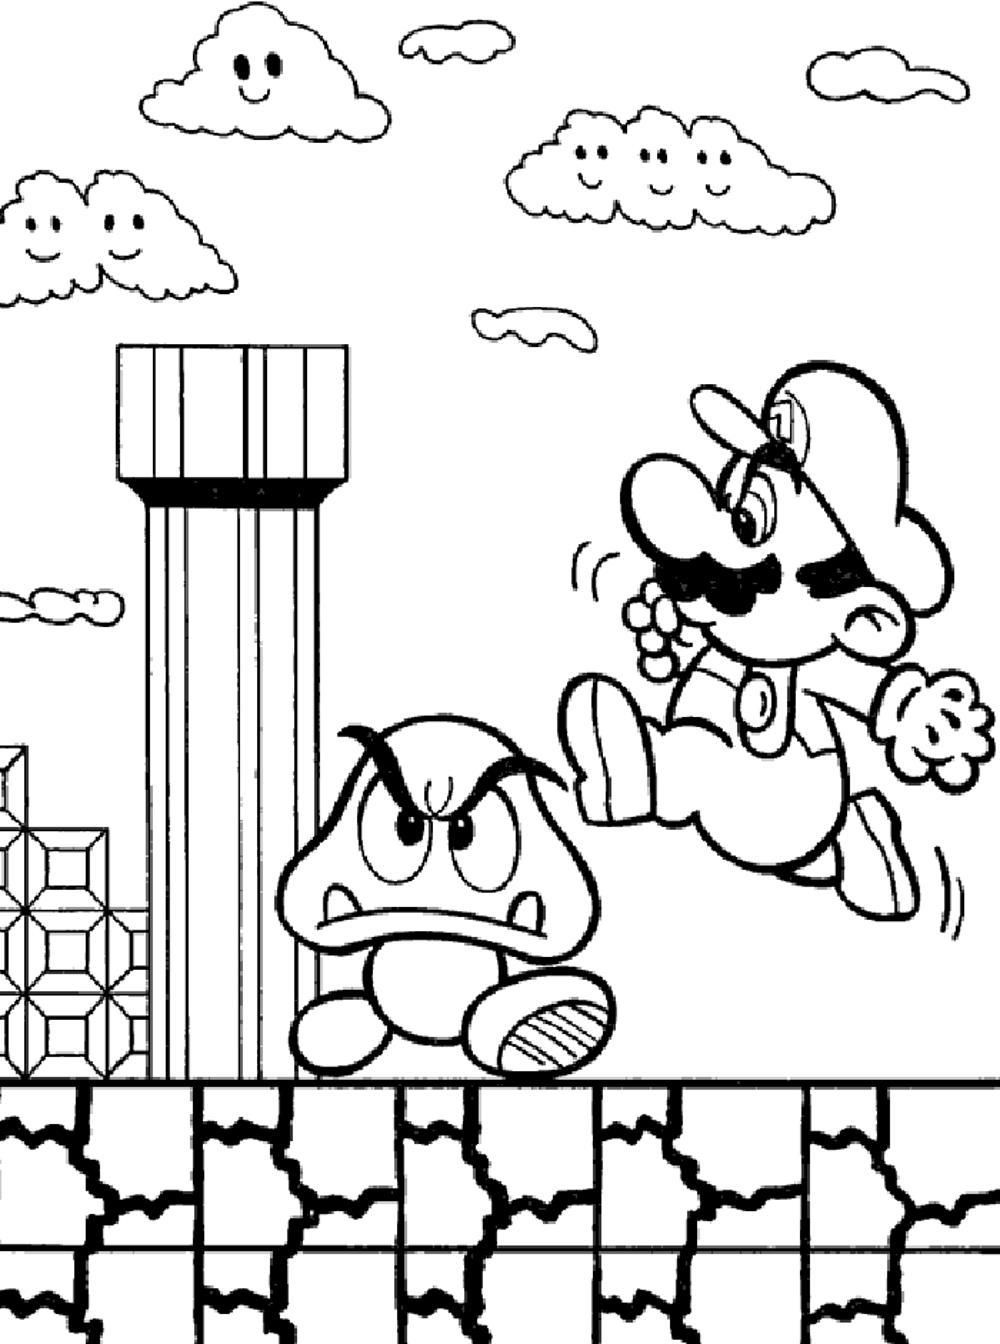 Mario bros coloring pages -  _ Mario Bros Printable Coloring Pages